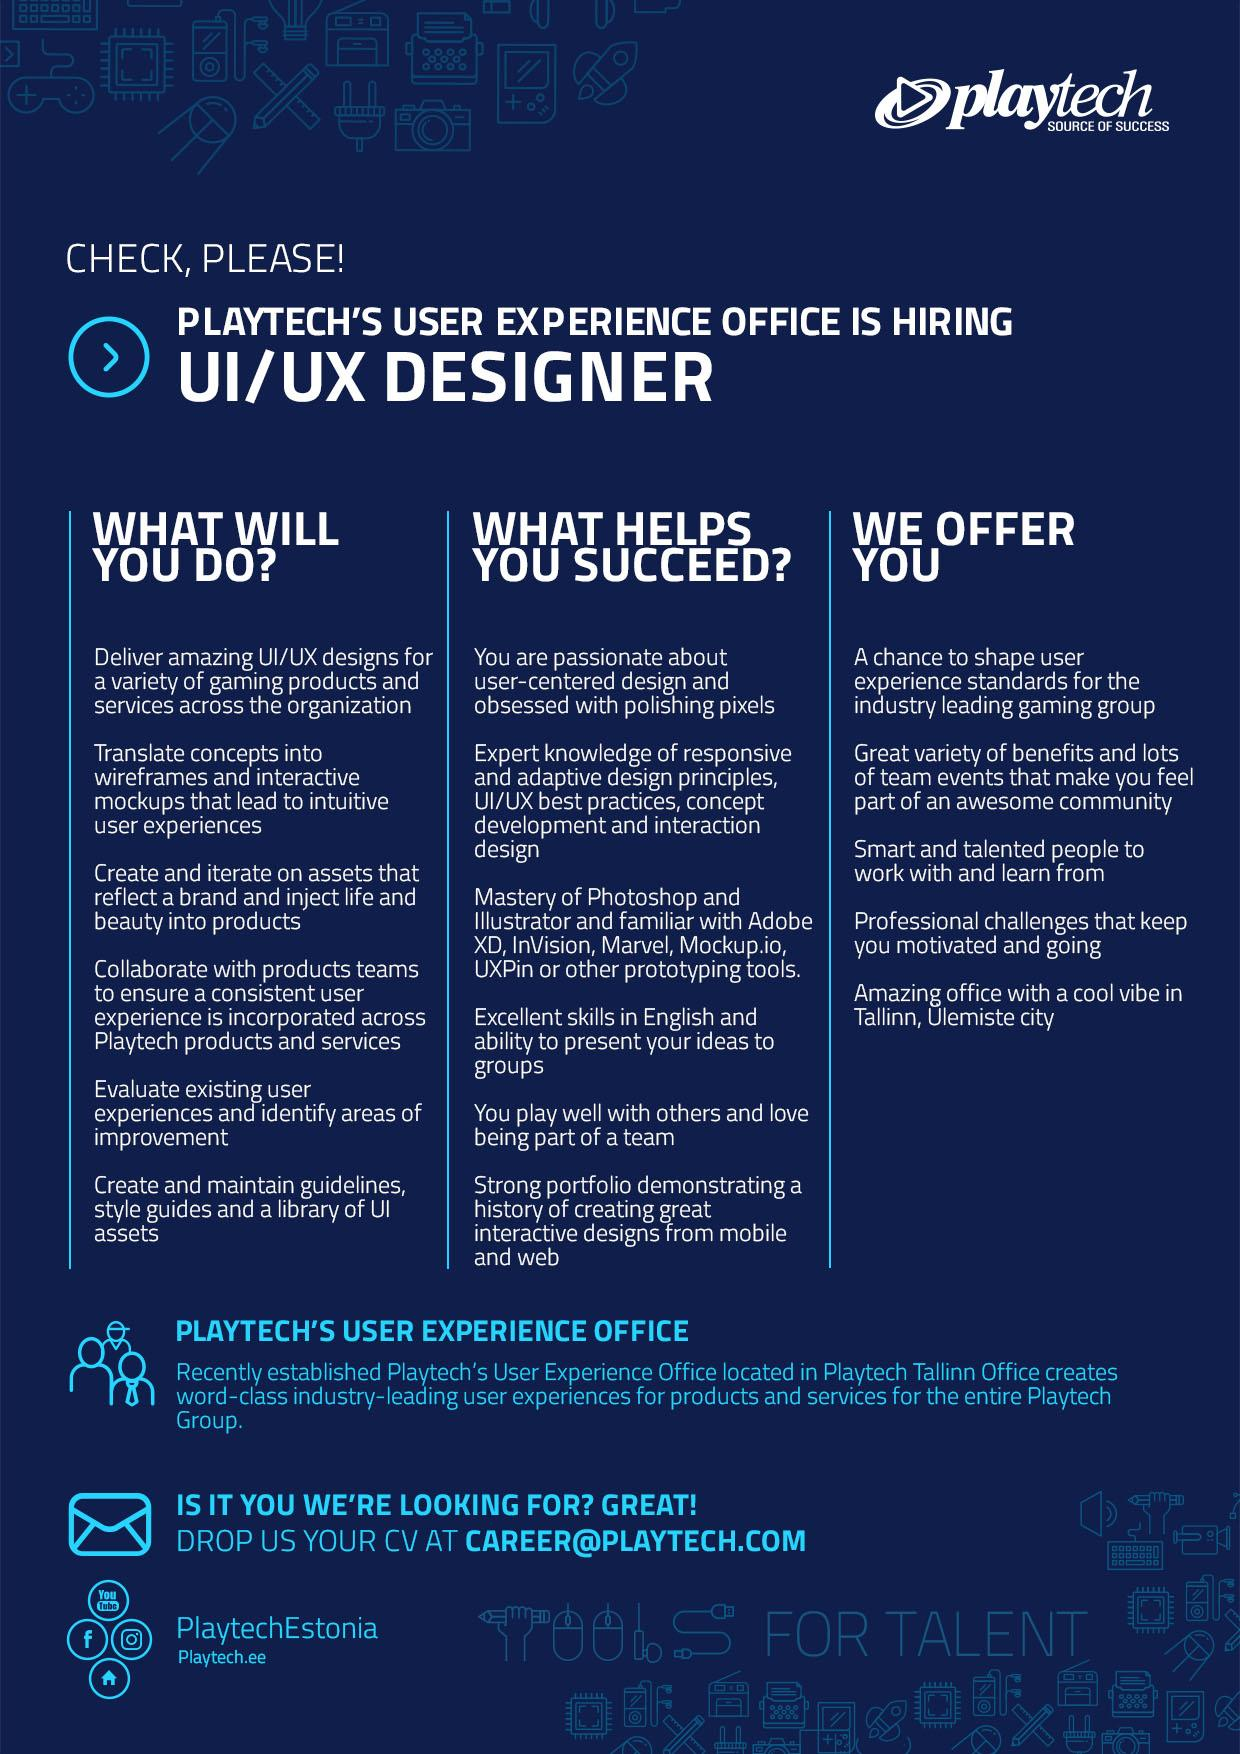 Playtech UIUX Designer – Ux Designer Job Description